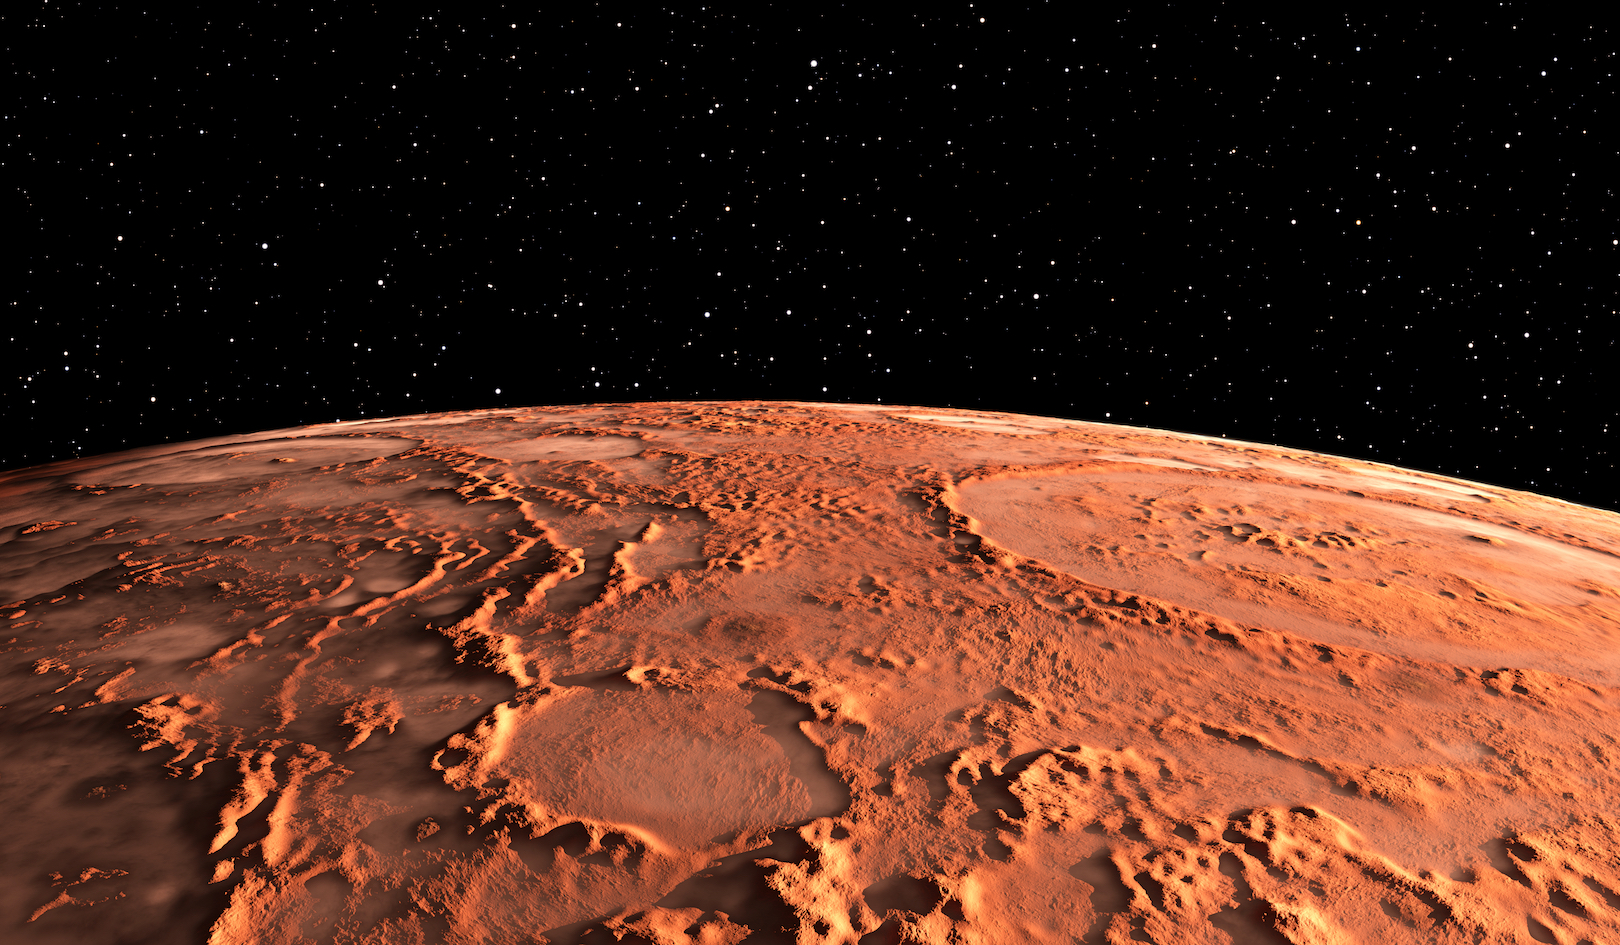 Researchers used a radar to probe polar ice caps on Mars and detected a lake of liquid water beneath the surface.